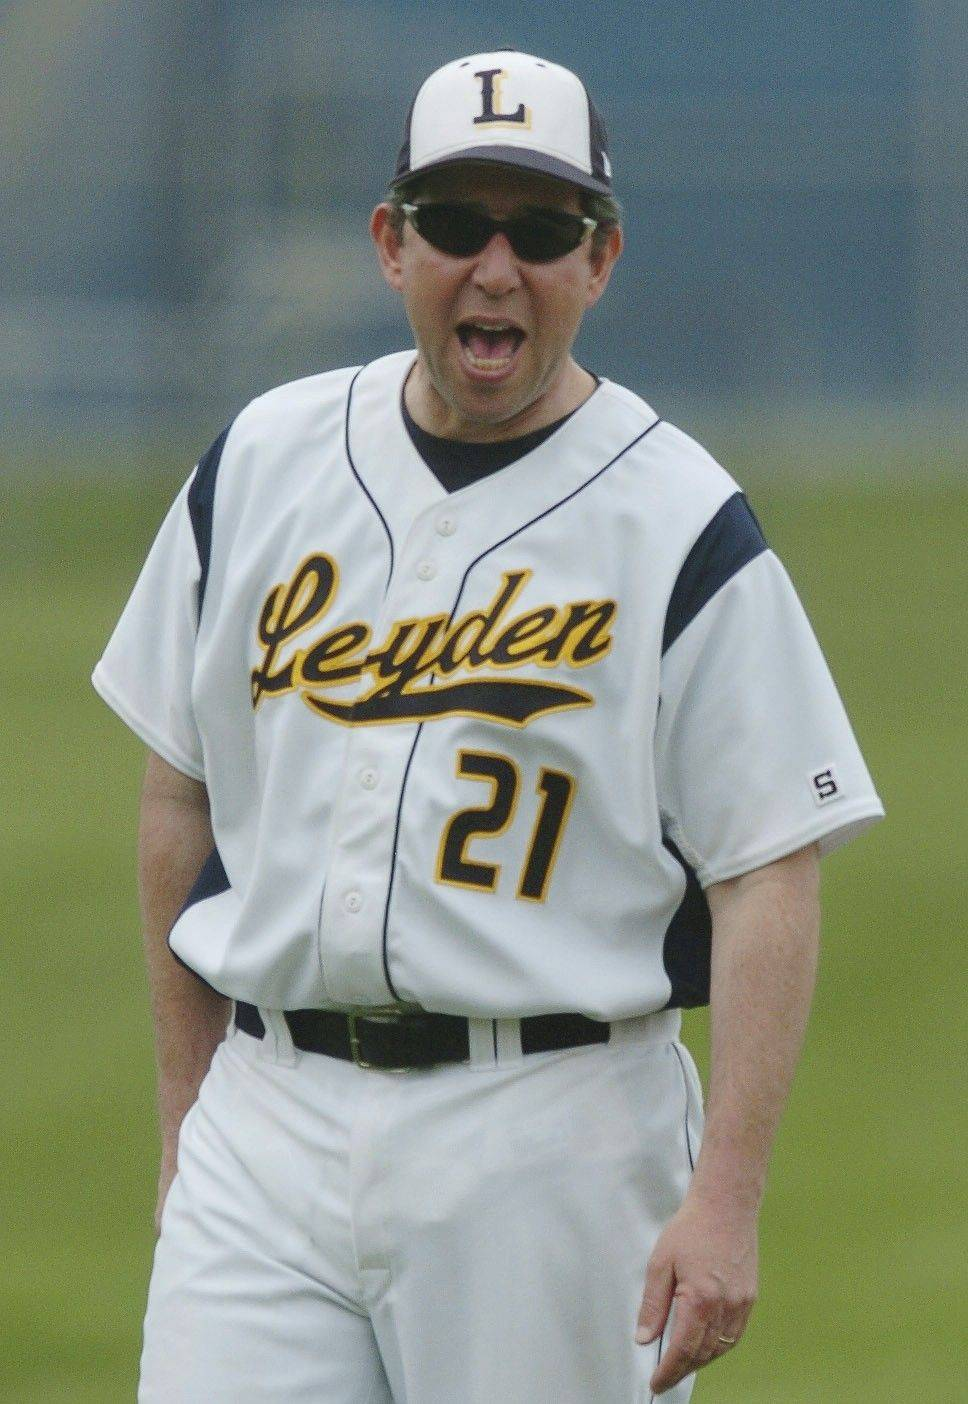 Leyden baseball coach Gary Wolf has decided to step down after a successful 23-year tenure.